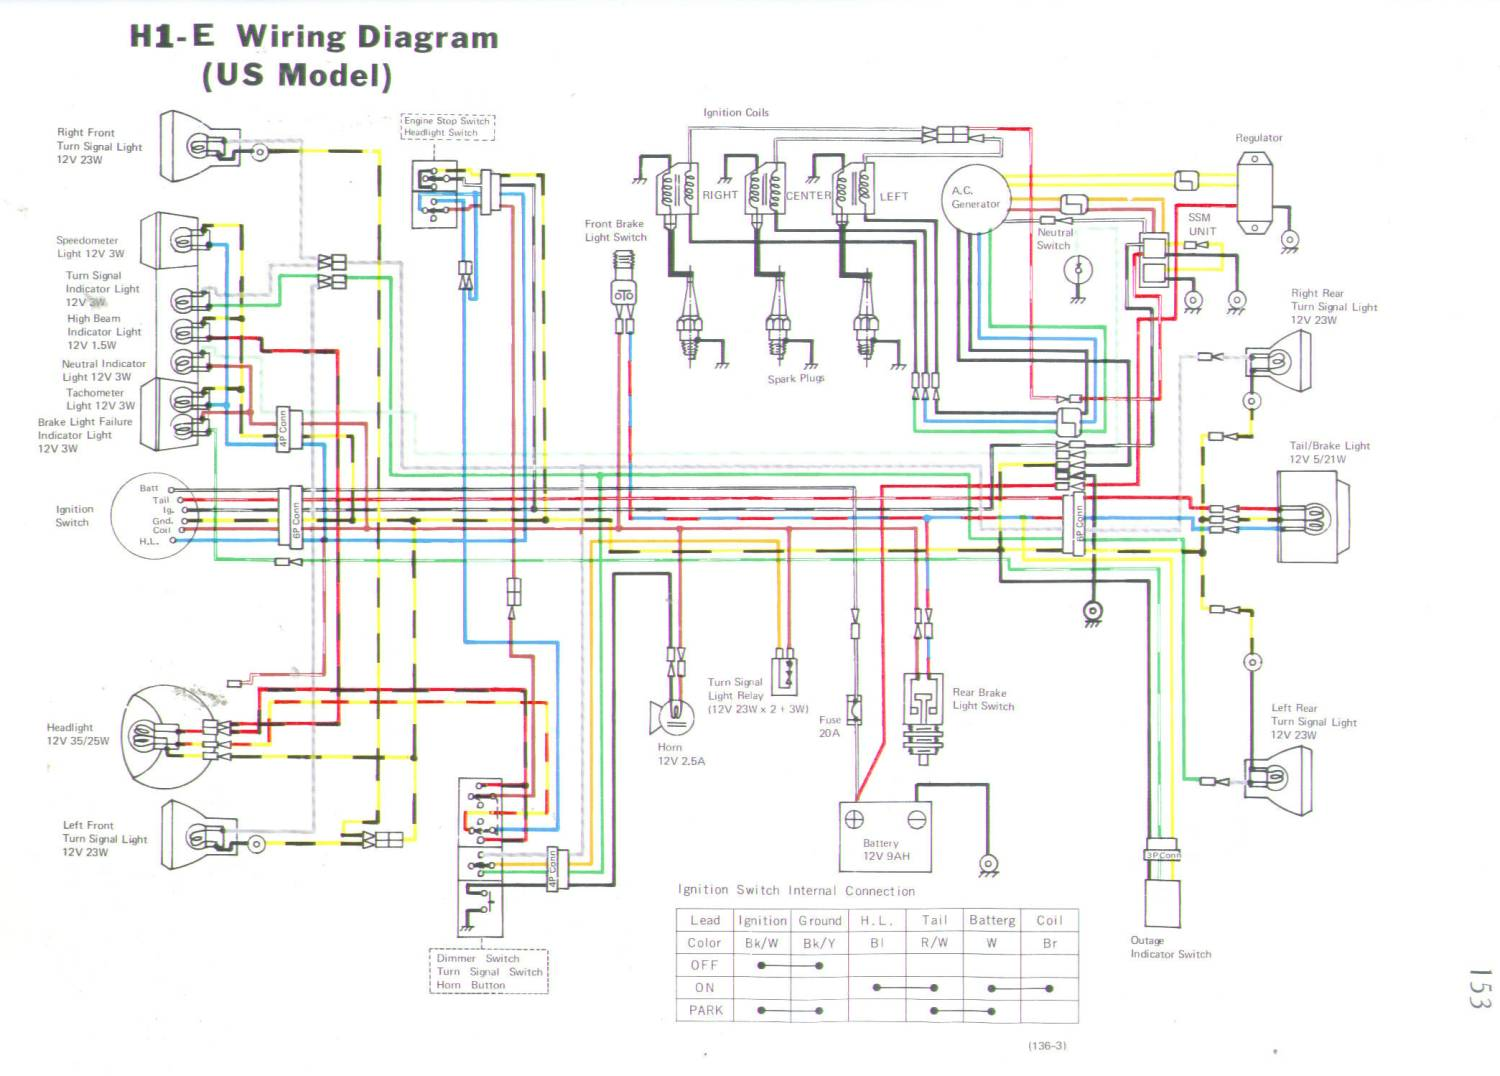 kawasaki h1 wiring diagram   26 wiring diagram images